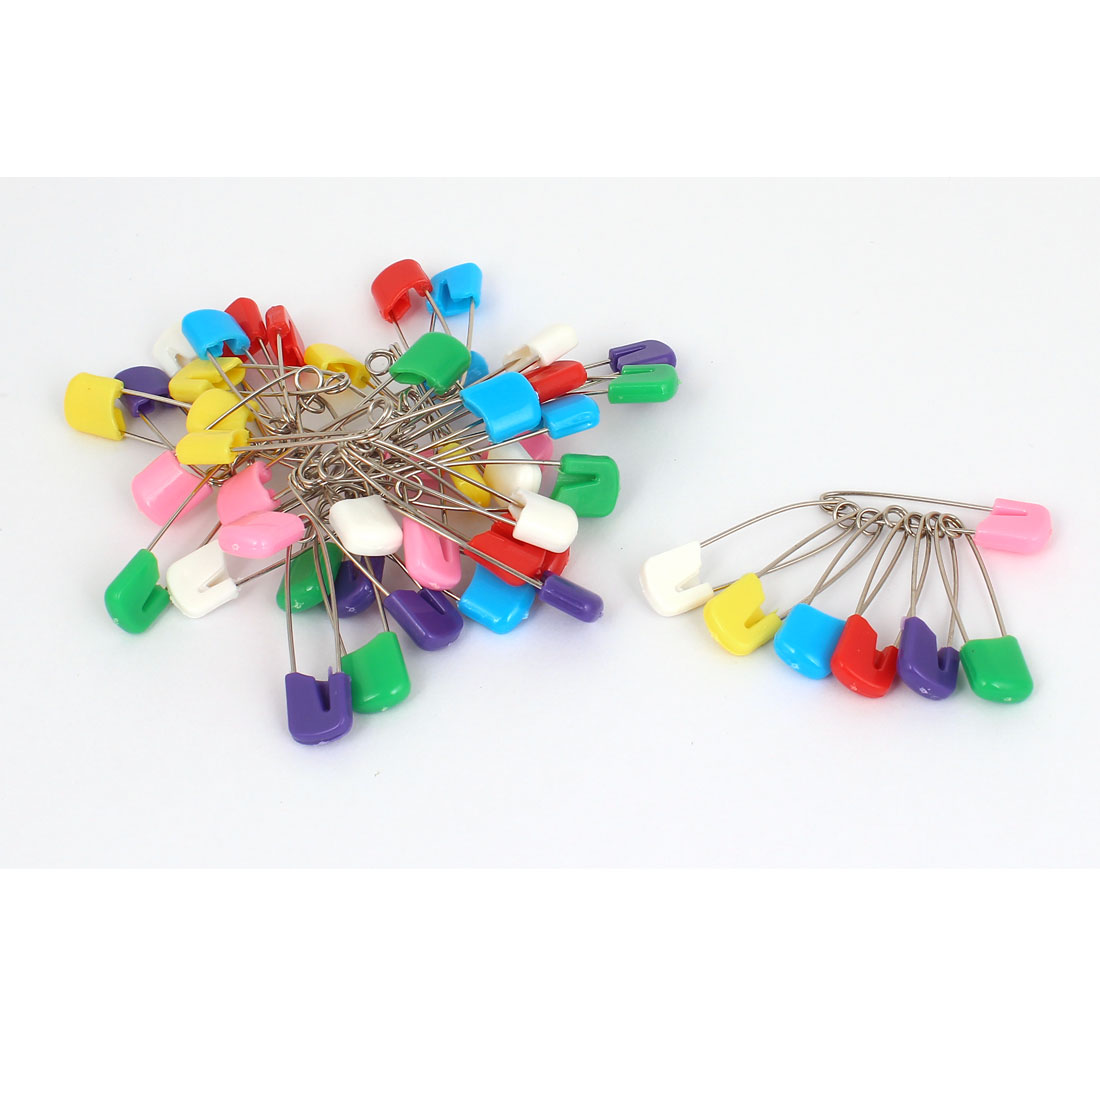 49 Pcs Plastic Head Locking Artificial Safety Pins 4cm Long Assorted Color